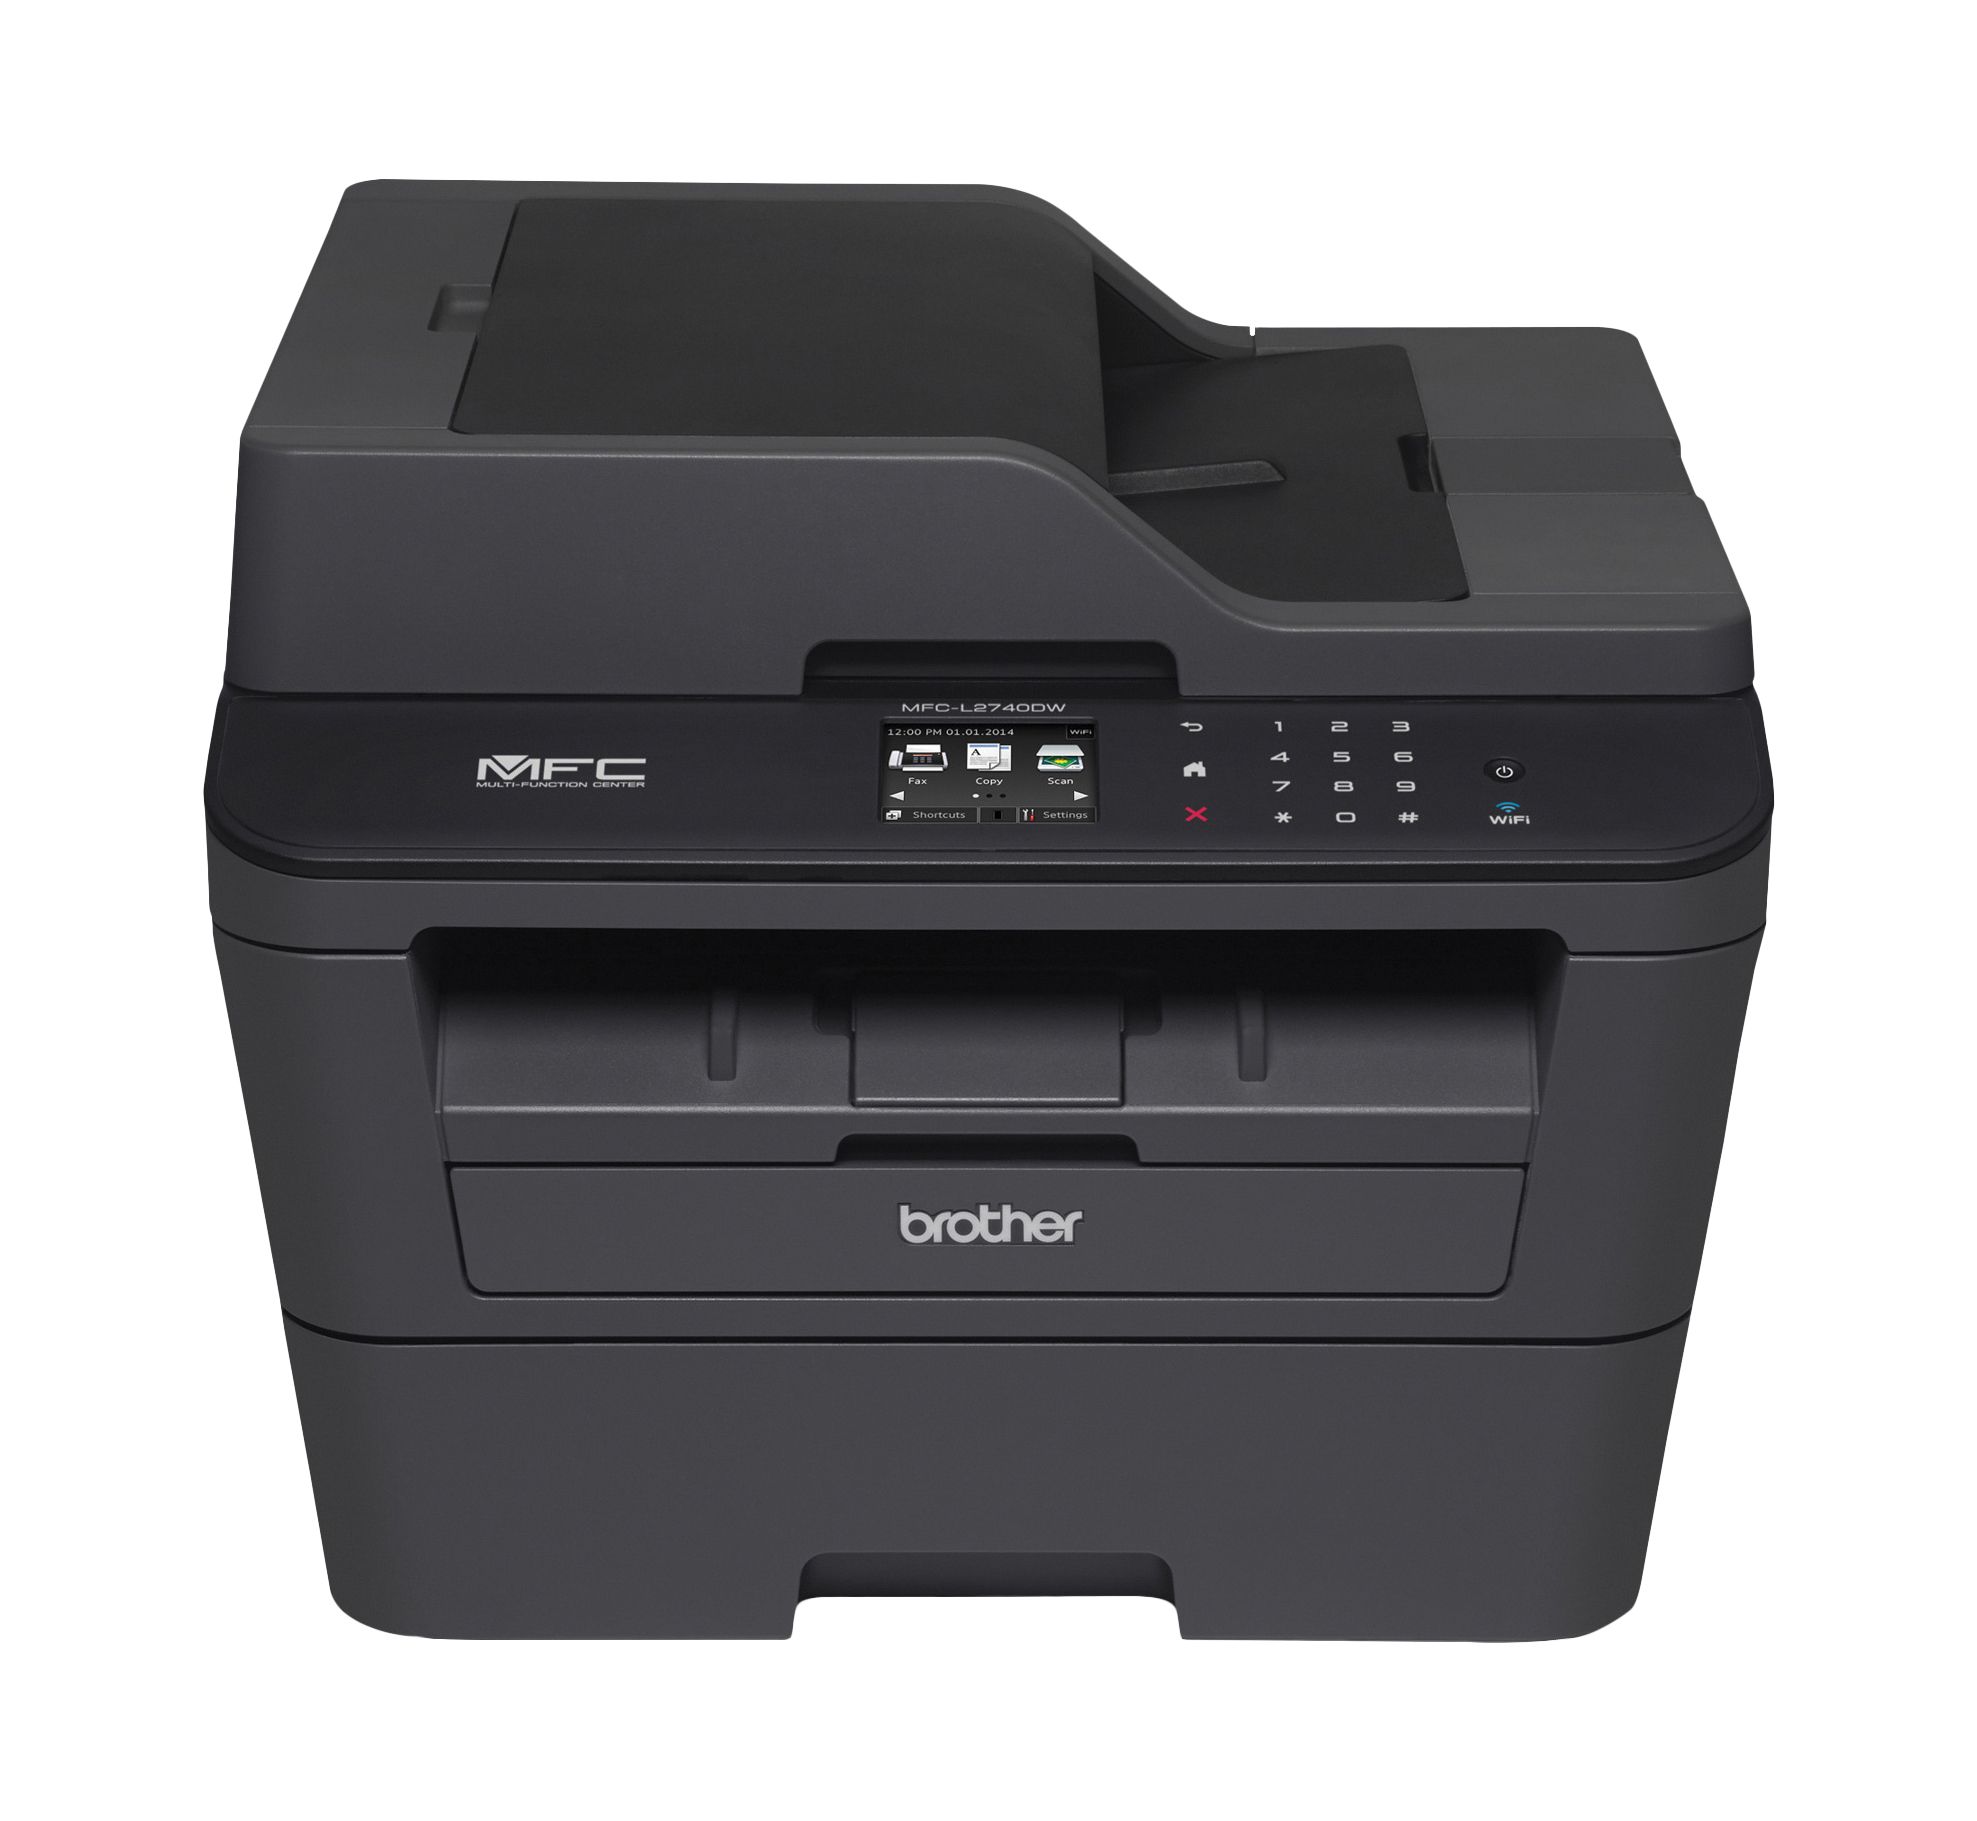 MFC-L2740dw Brother MFC-L2740DW Multifunctional Printer - New in Box